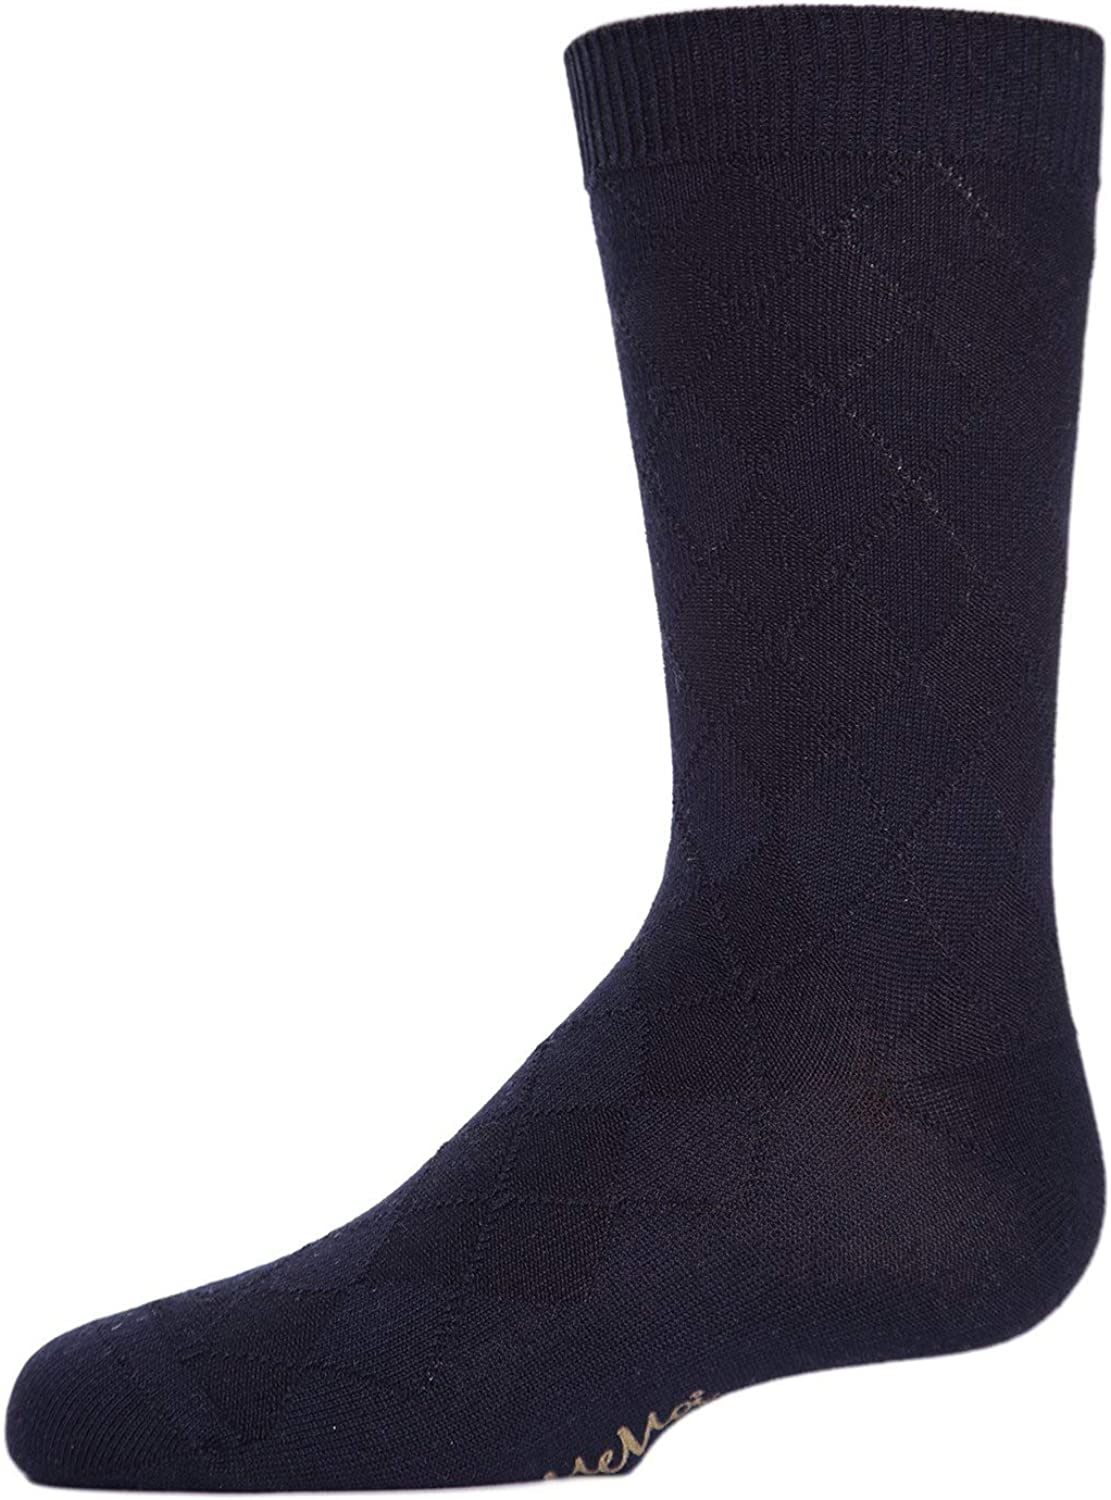 MeMoi Awesome Argyle Crew Boys Our shop Max 85% OFF OFFers the best service Socks